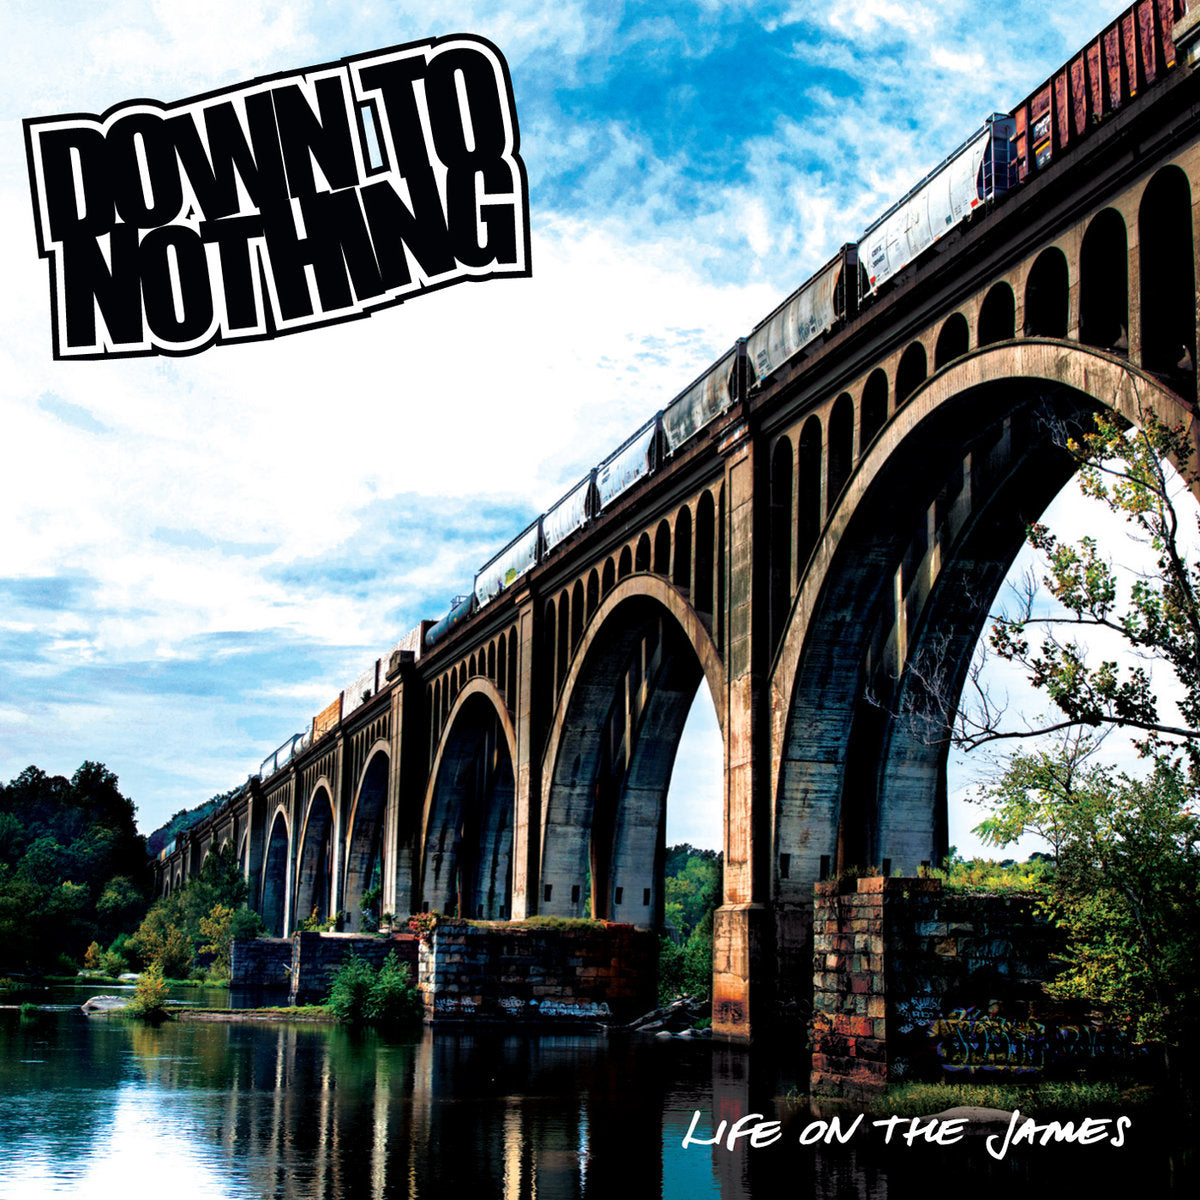 DOWN TO NOTHING 'Life on the James' LP